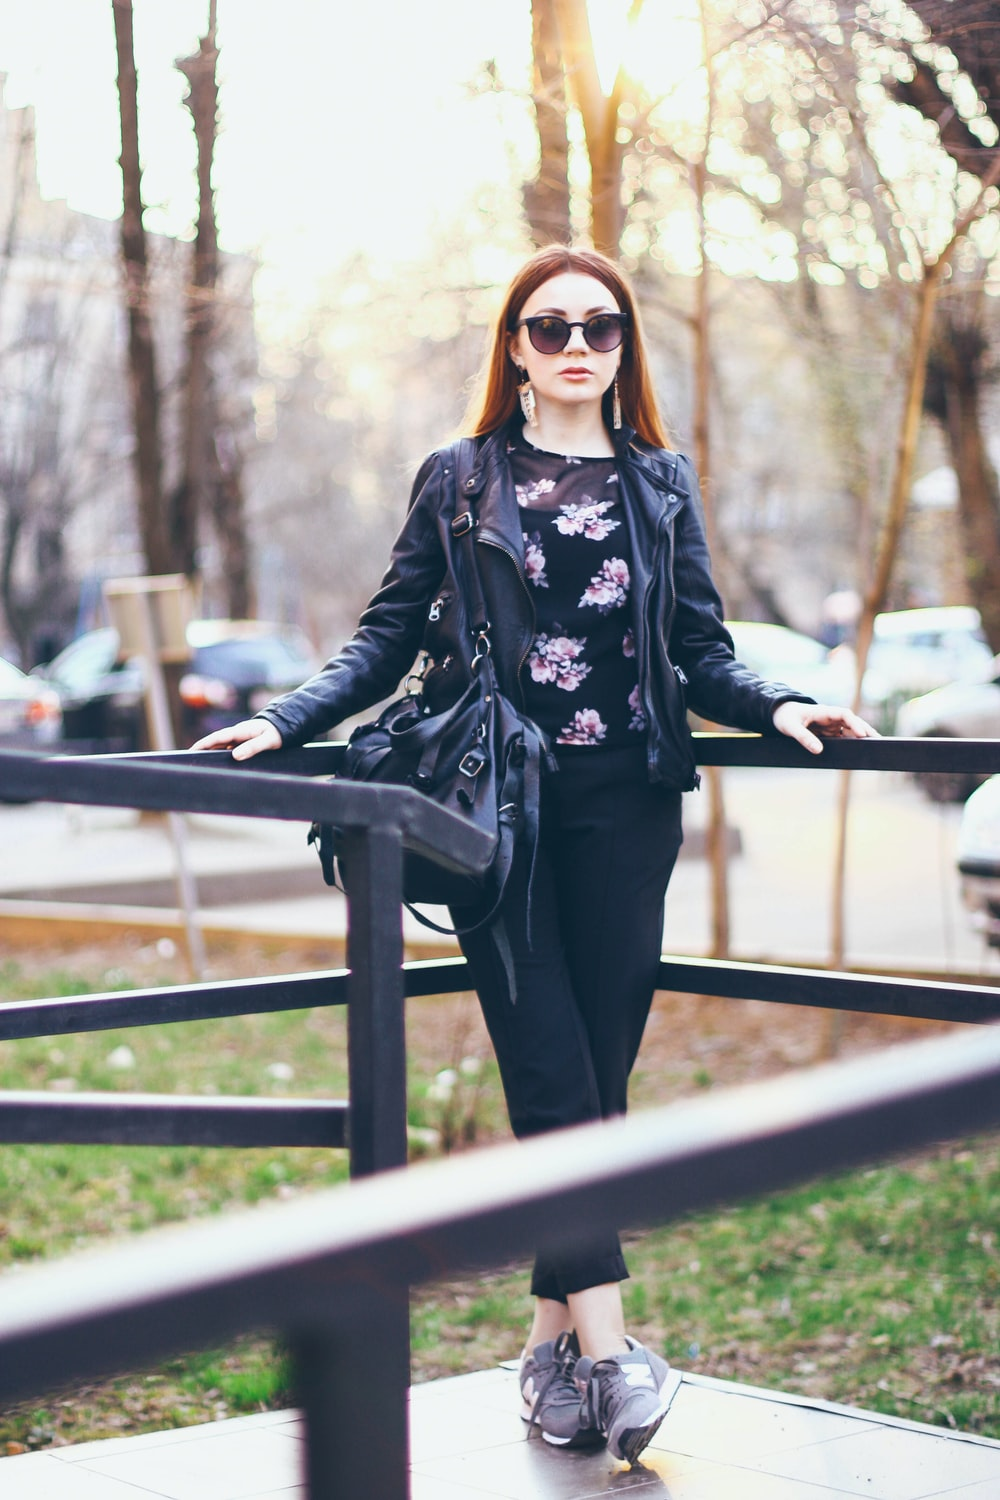 woman in black and white floral long sleeve shirt and black pants wearing sunglasses